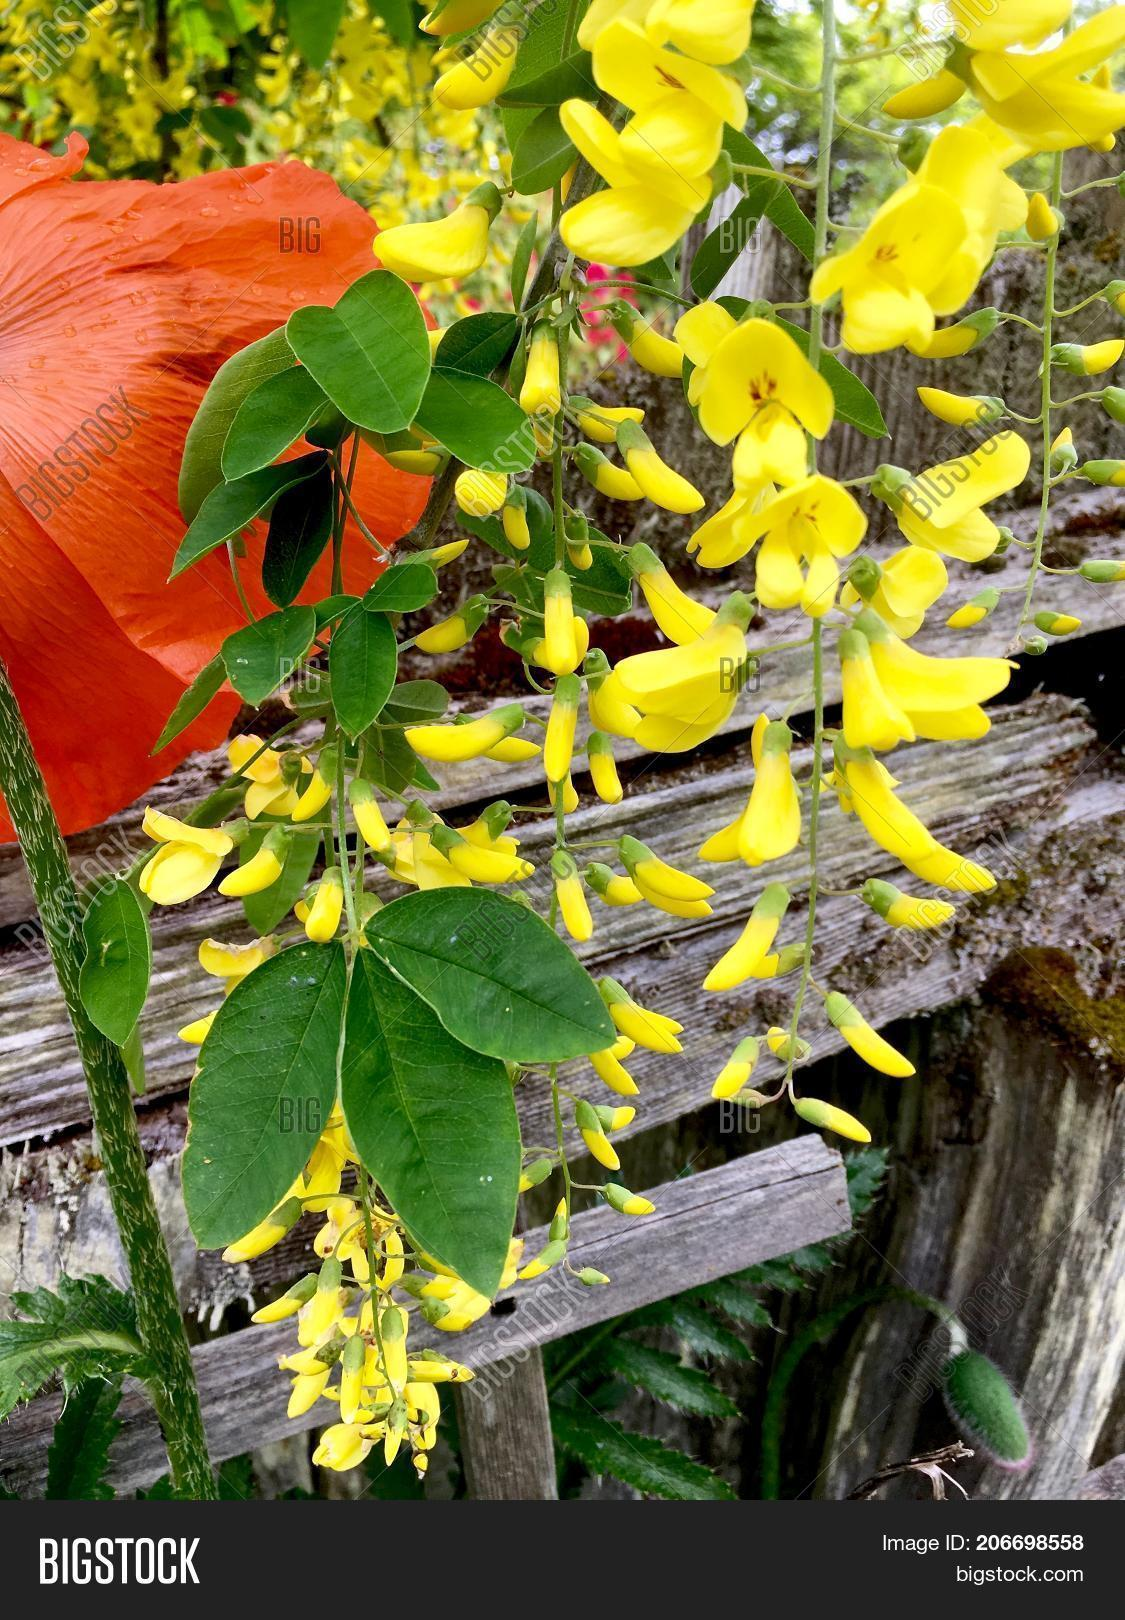 Yellow hanging flowers image photo free trial bigstock yellow hanging flowers of the laburnum tree hanging in a garden in front of a weathered mightylinksfo